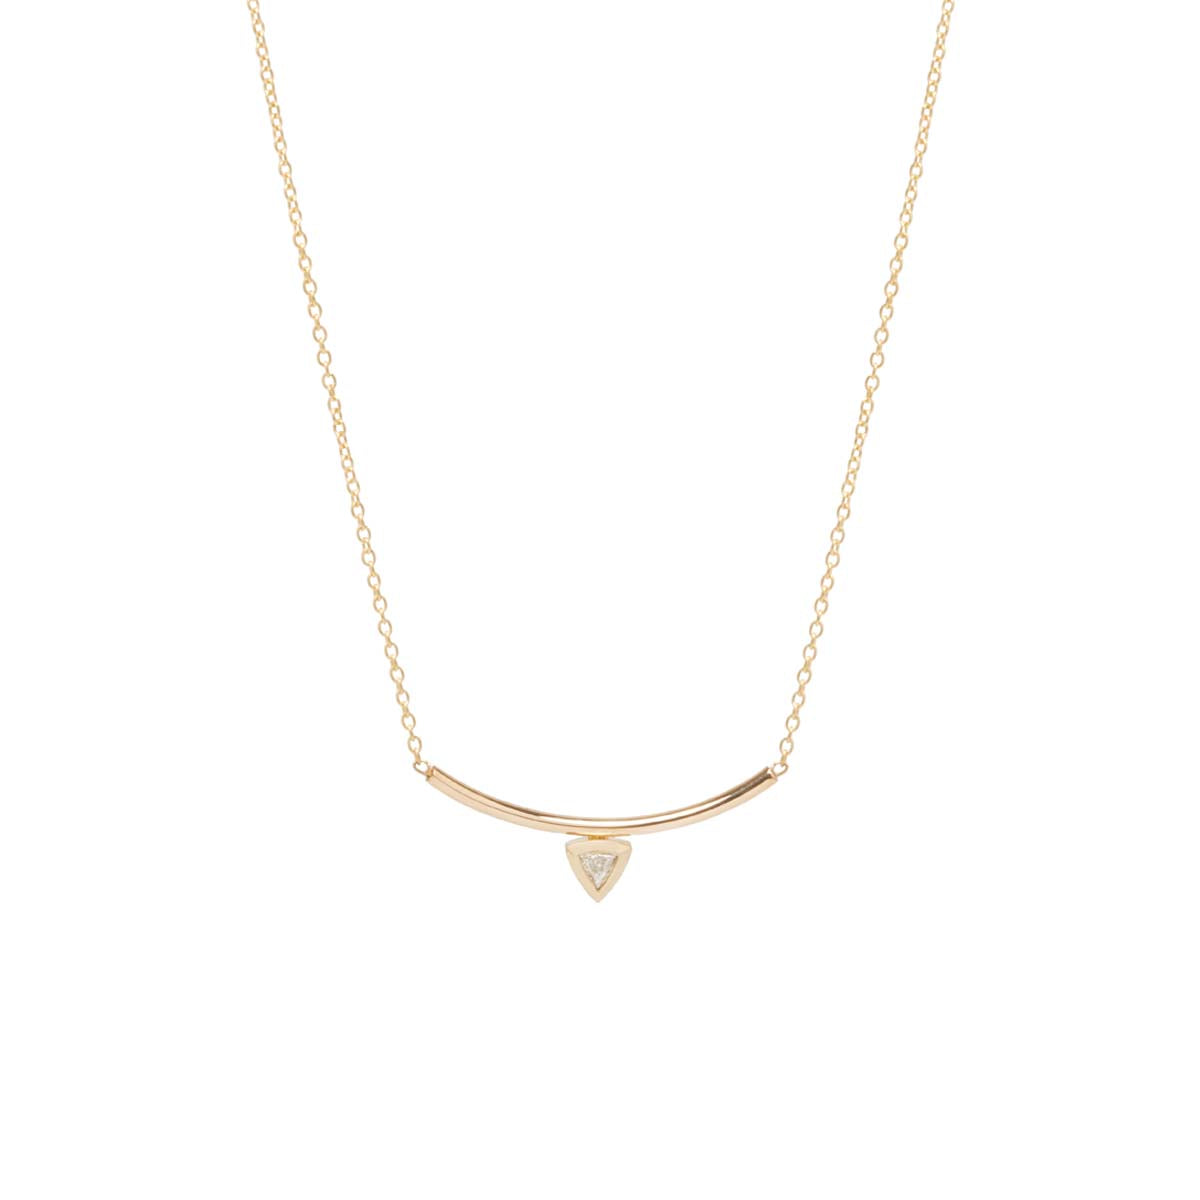 14k trillion diamond curved bar necklace